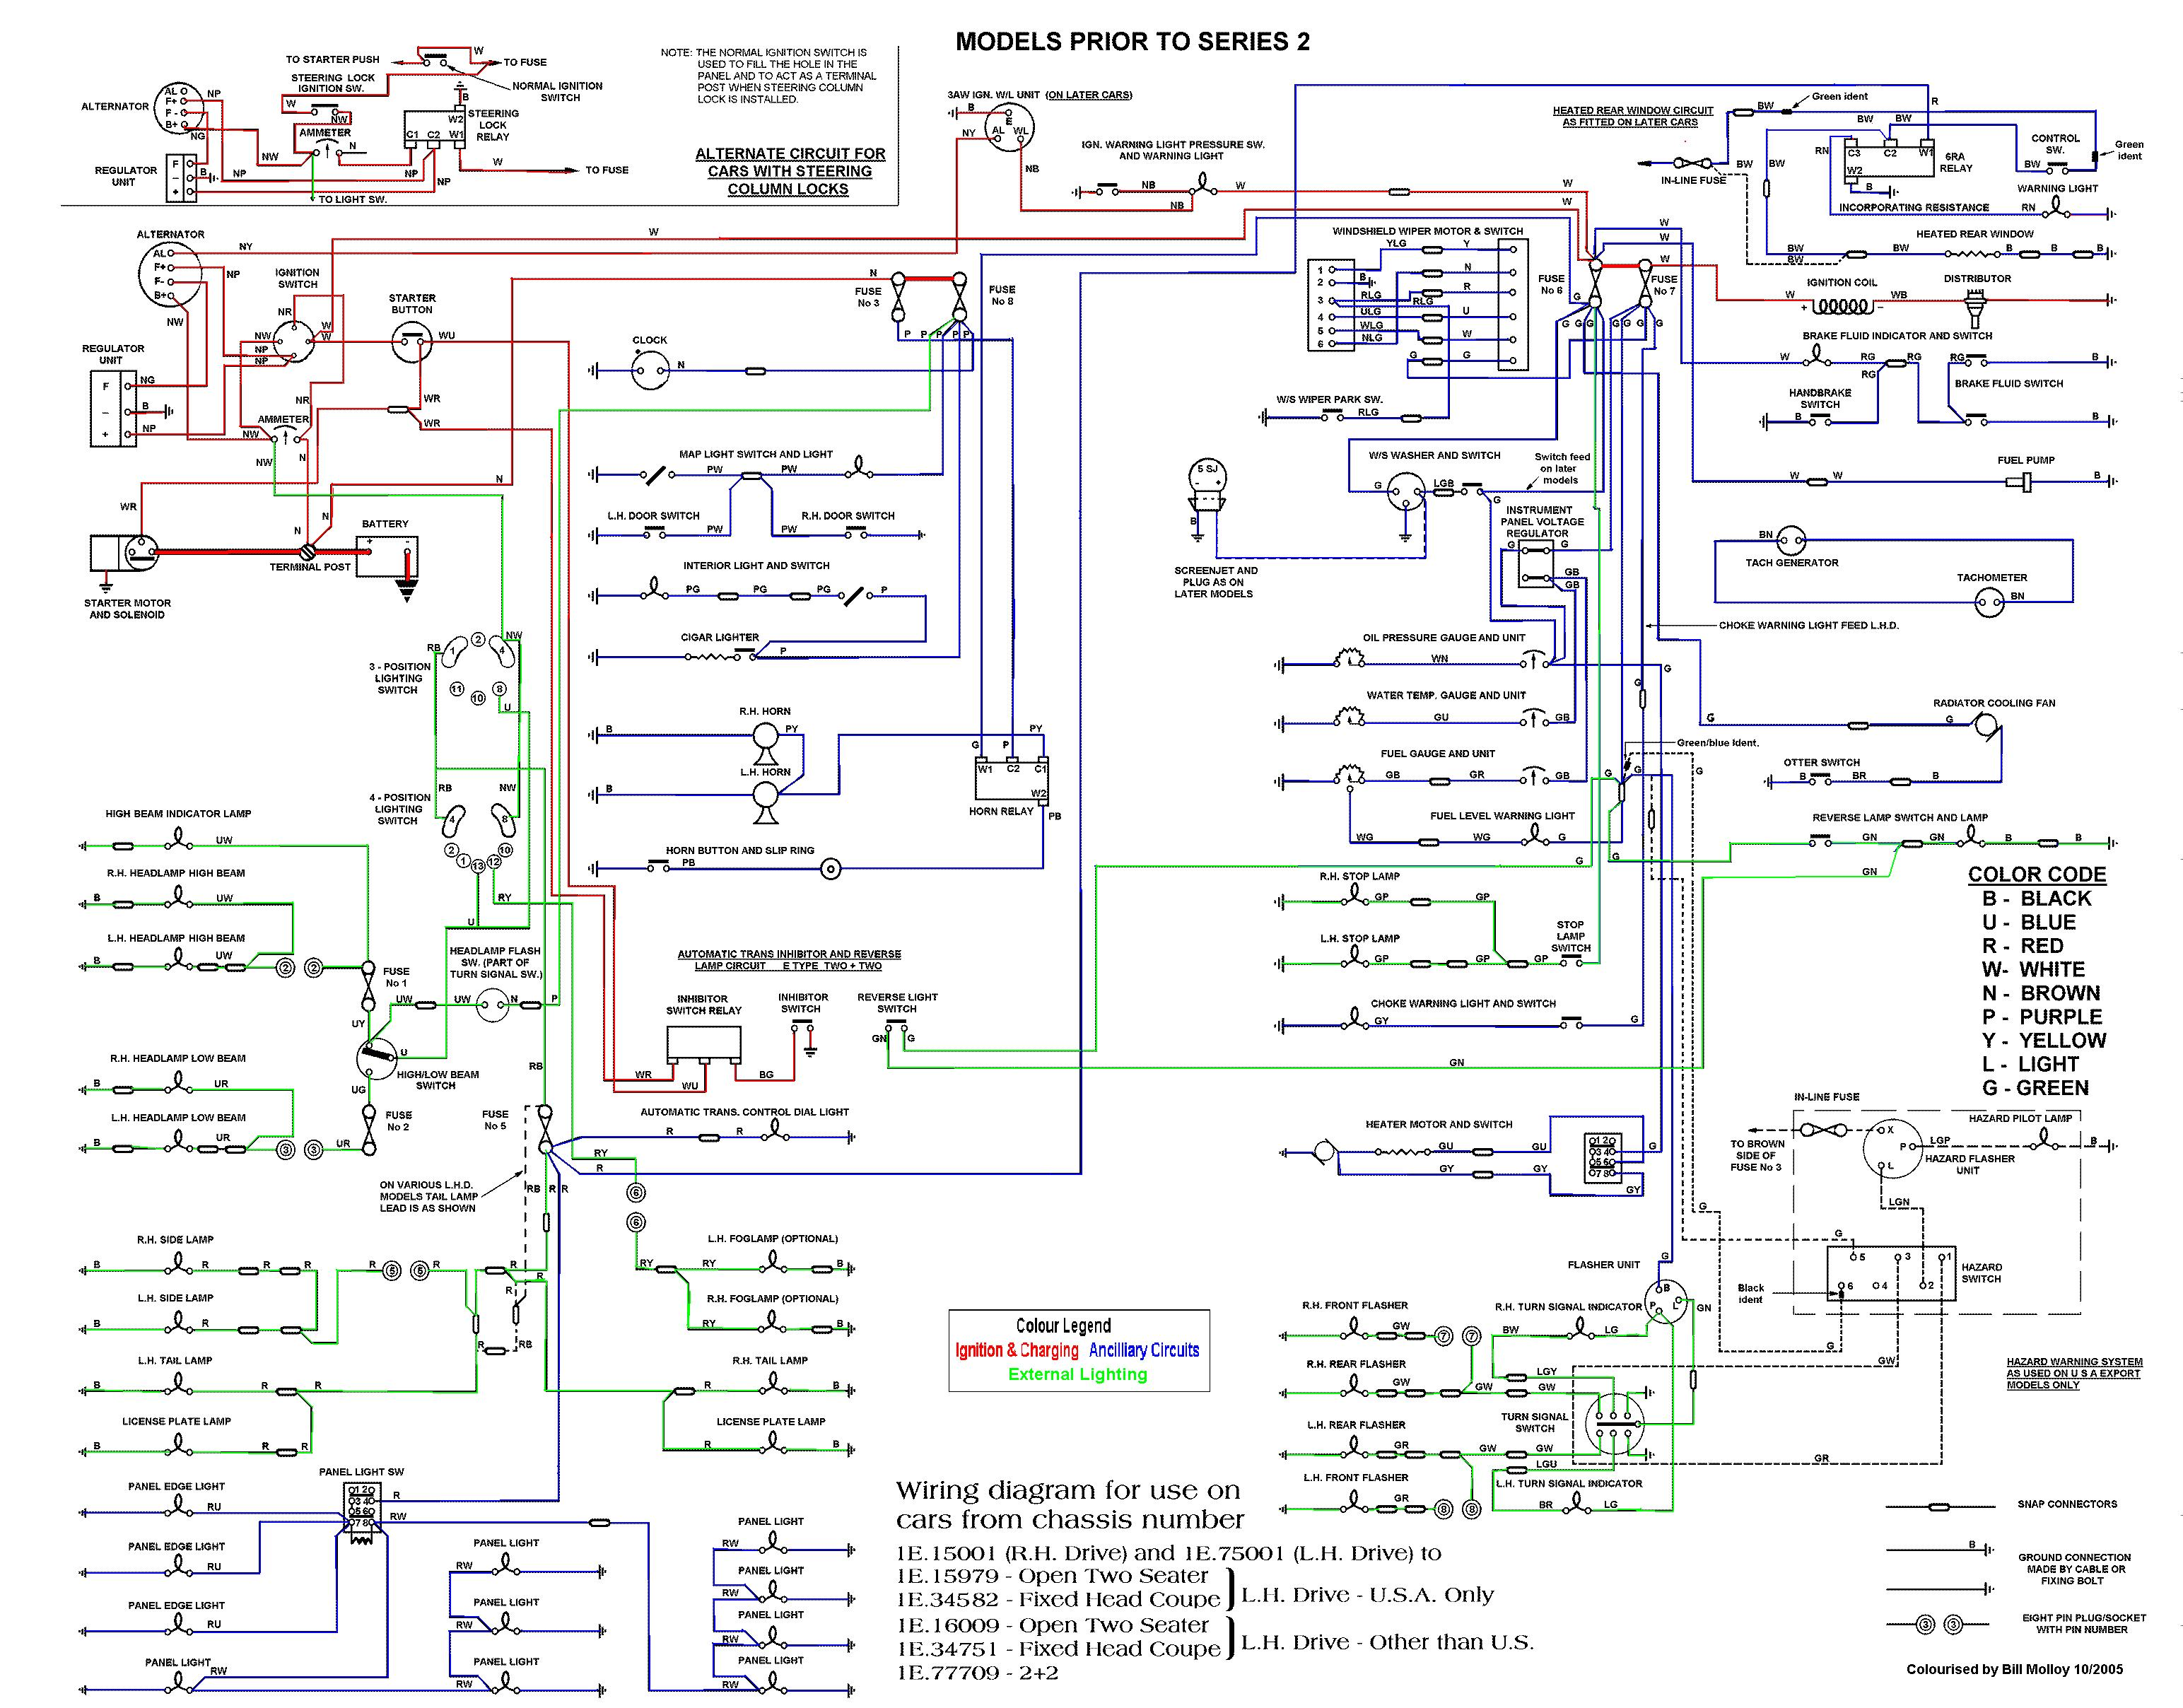 e type wiring diagram expert schematics diagram rh atcobennettrecoveries  com 110 Volt AC Wiring Colors AC Thermostat Wiring